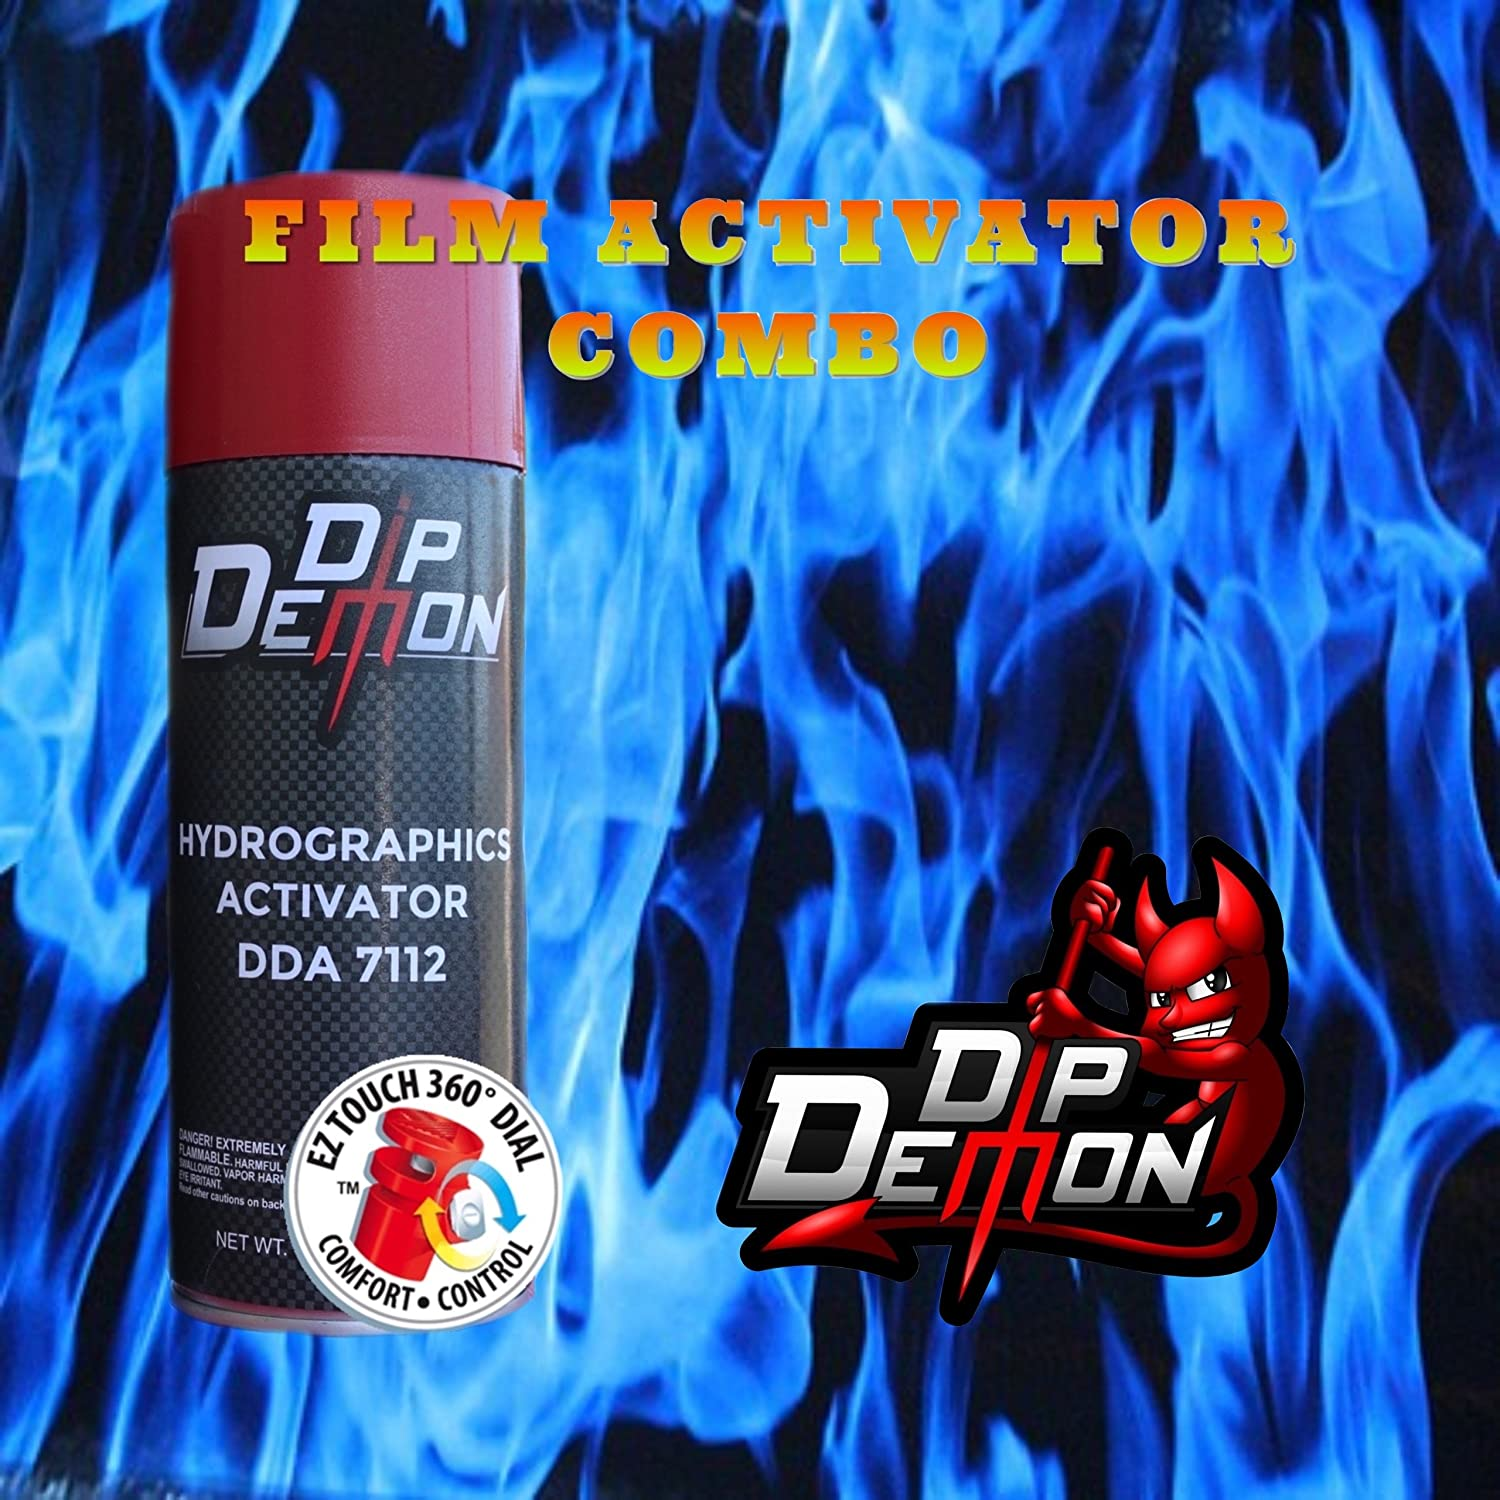 Combo Kit Blue Challenge the lowest price Flames Hydrographic Transfer Water Activator Film Courier shipping free shipping